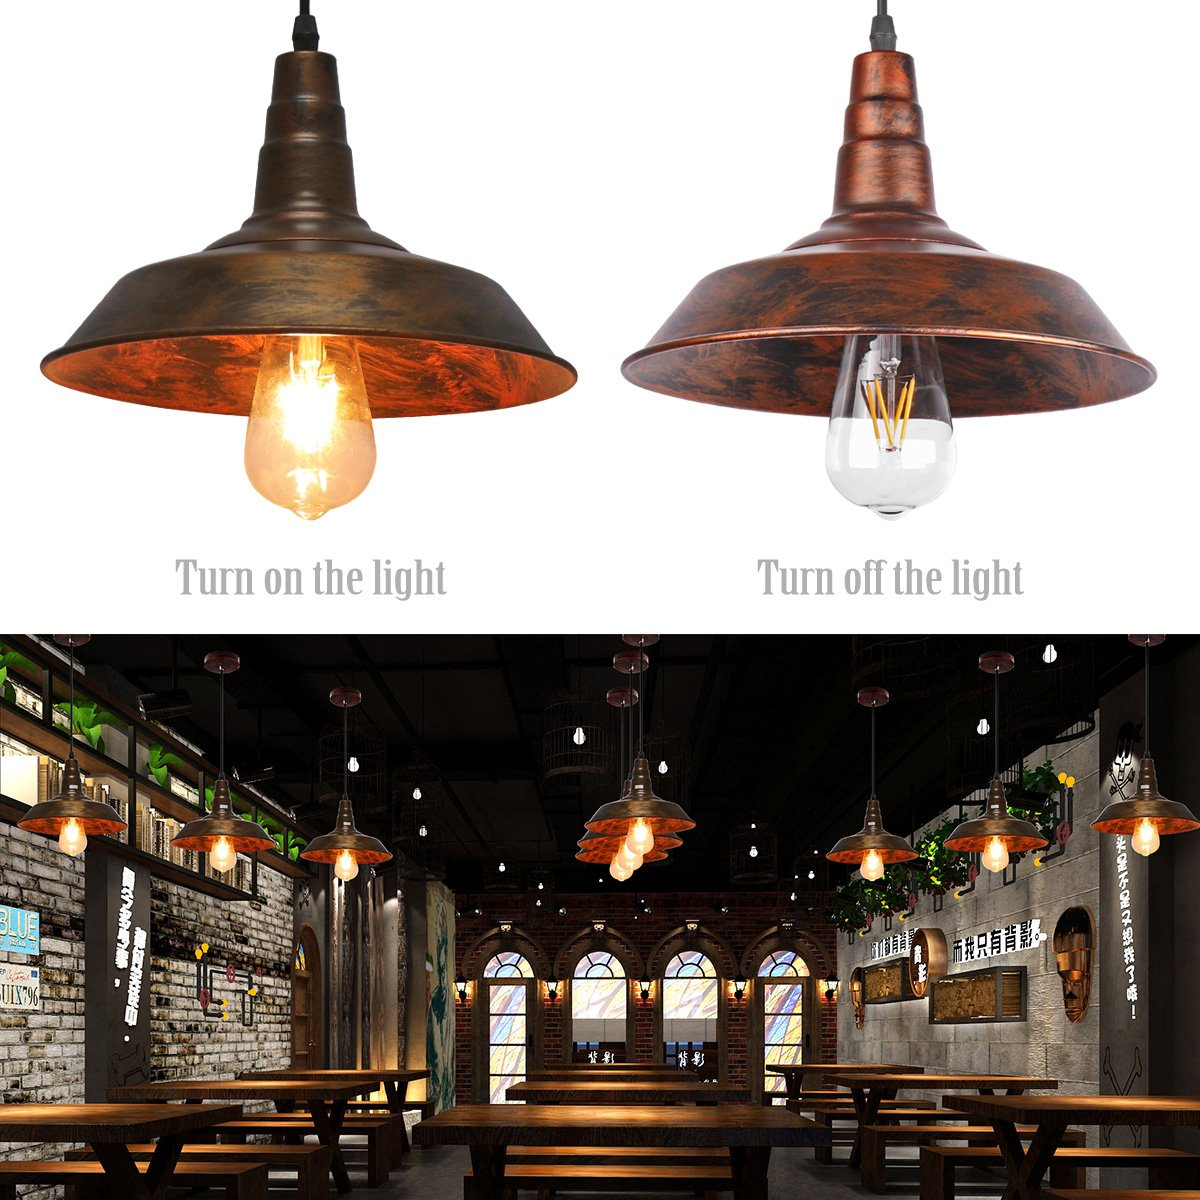 Sunsbell industrial retro vintage loft wall coffee bar lighting sunsbell industrial retro vintage loft wall coffee bar lighting fixtrure sconce pendant ceiling lamp fixtures light shades for e27 edison bulbsbrown aloadofball Gallery